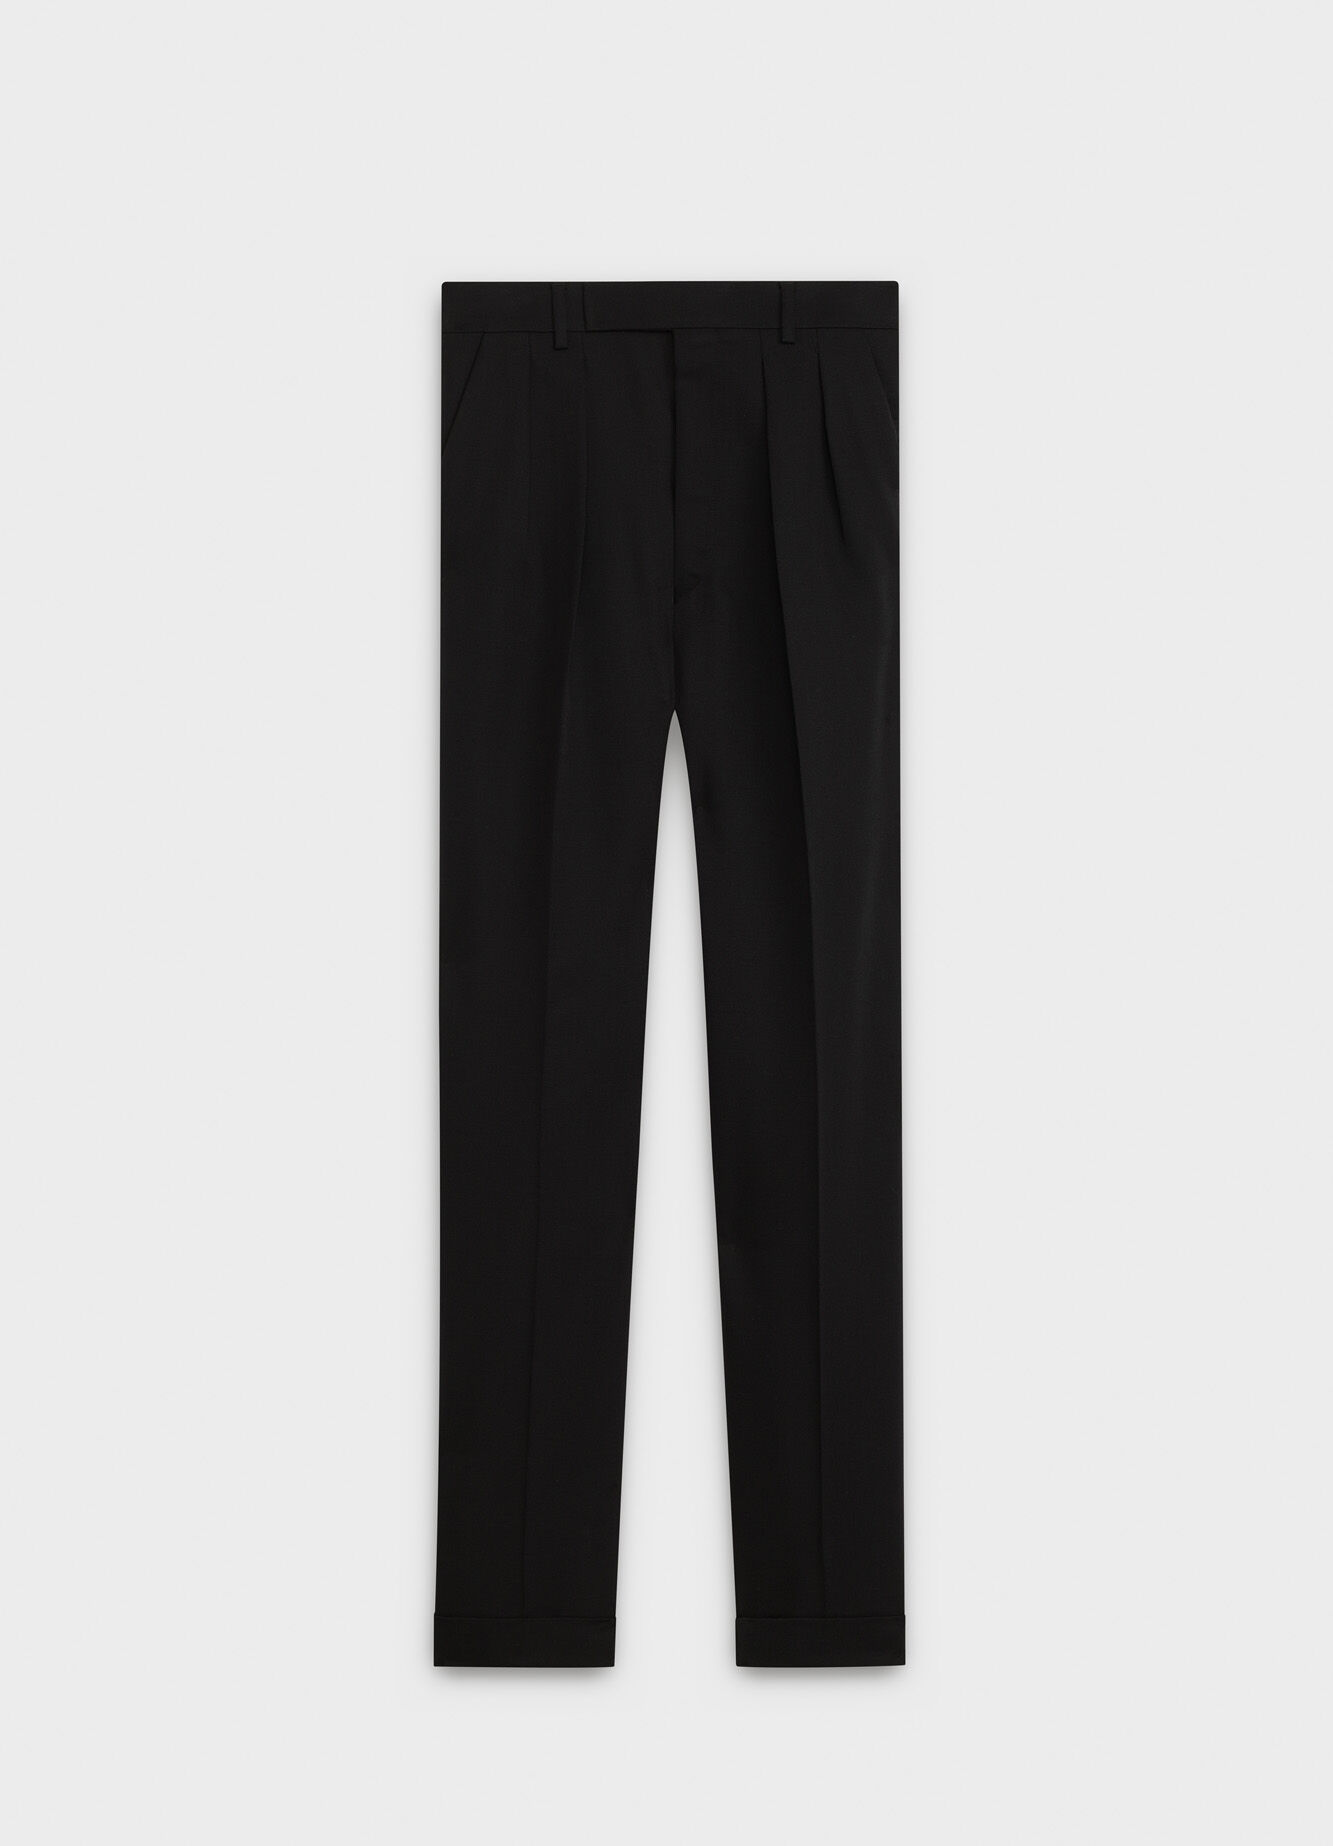 DOUBLE-PLEATED PANTS WITH TURN-UPS IN MOHAIR WOOL